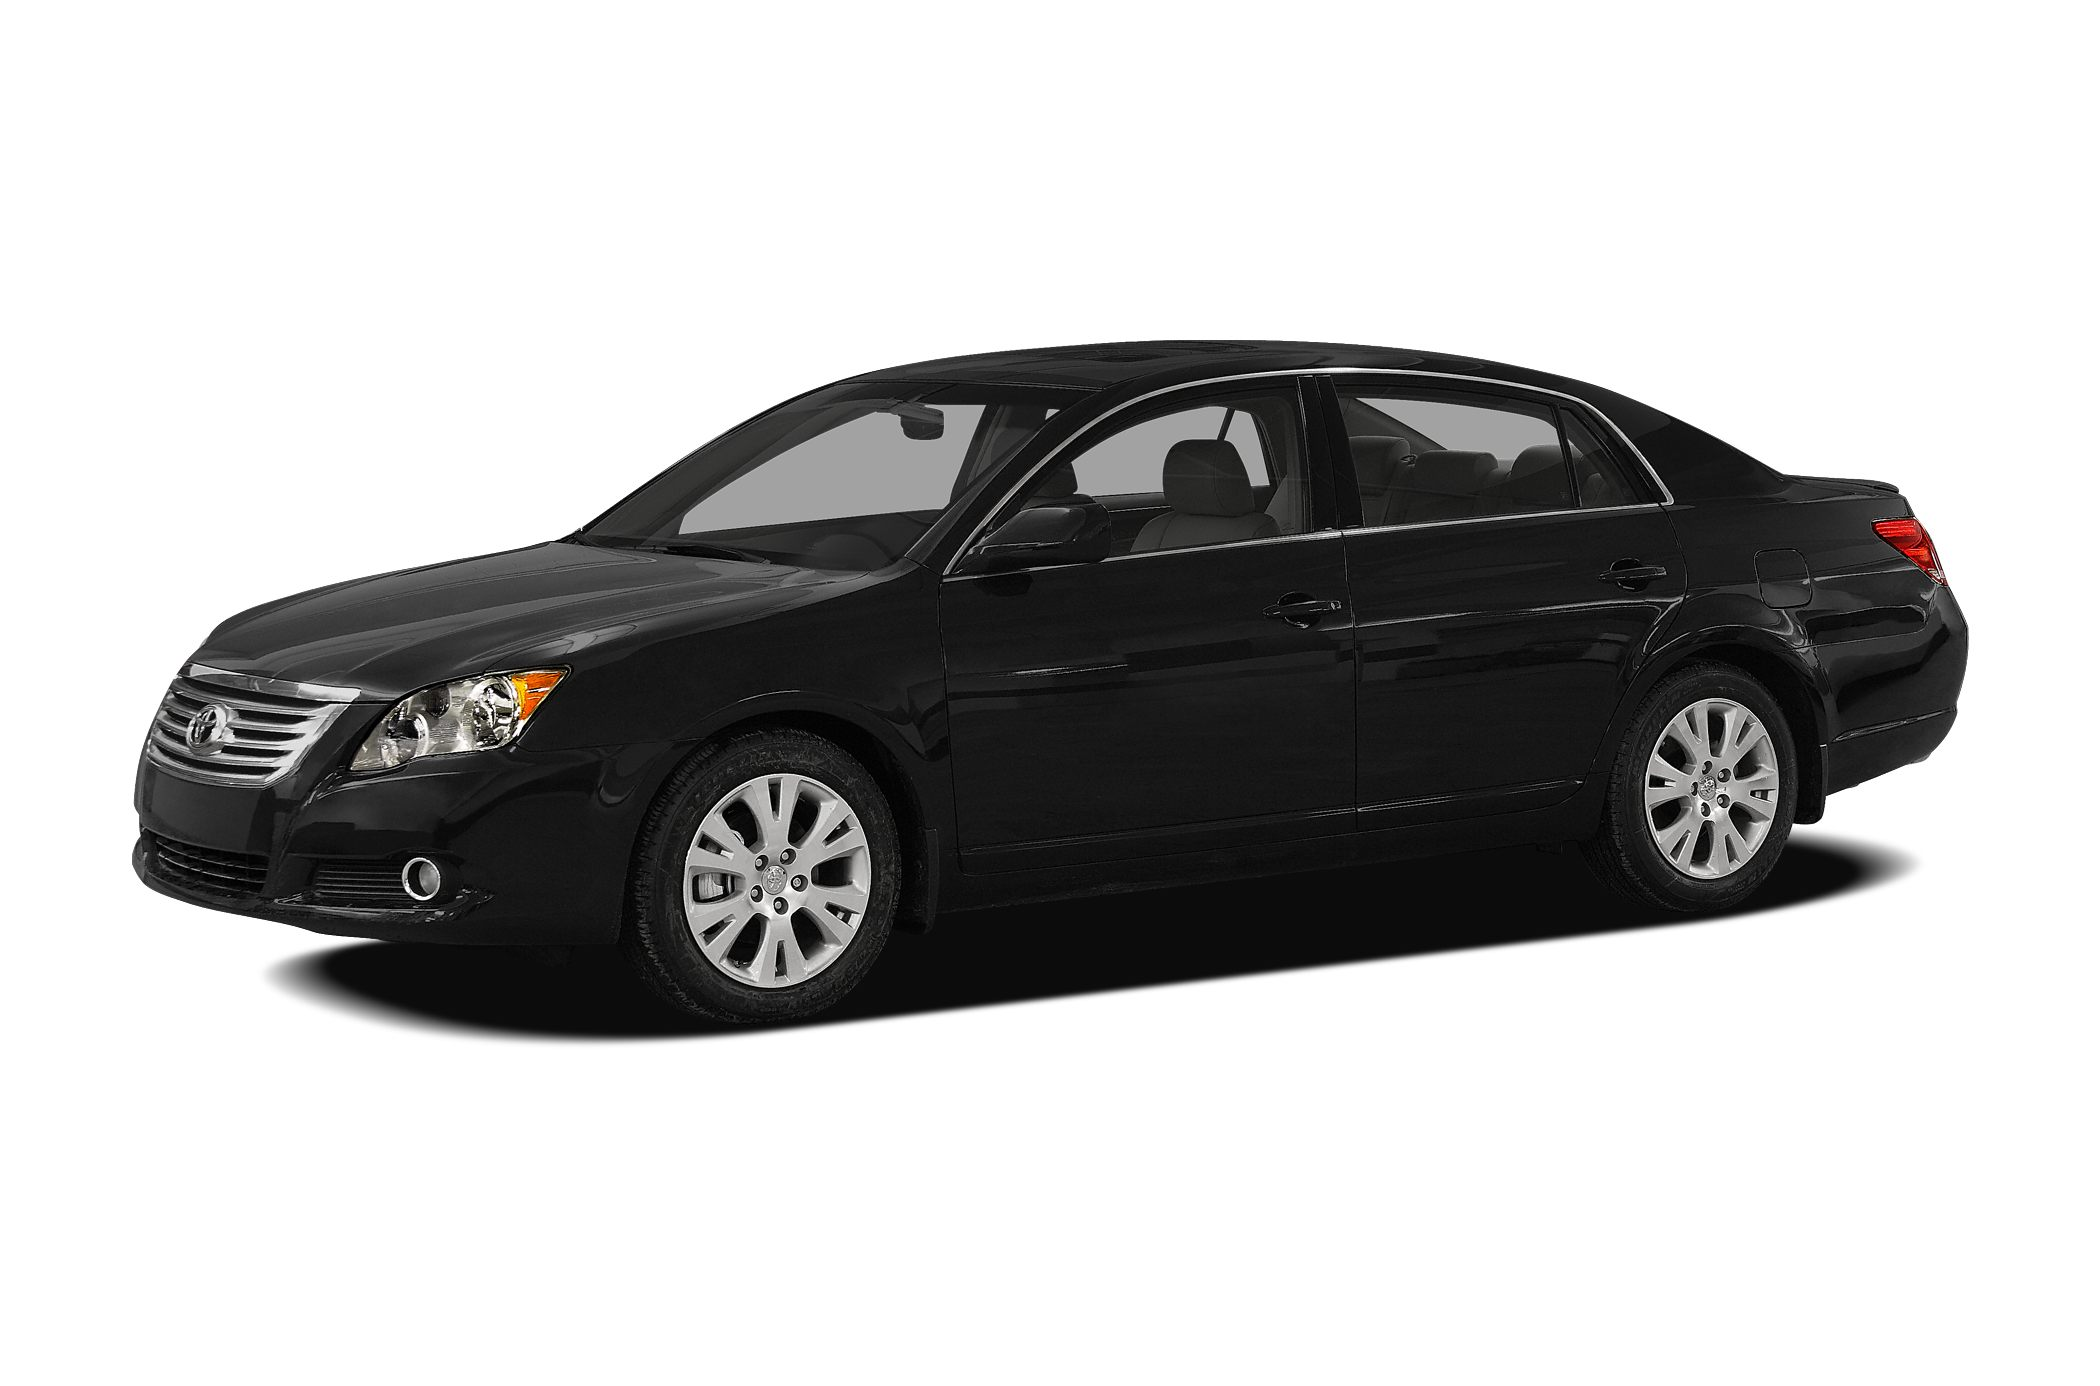 2008 Toyota Avalon Pricing And Specs